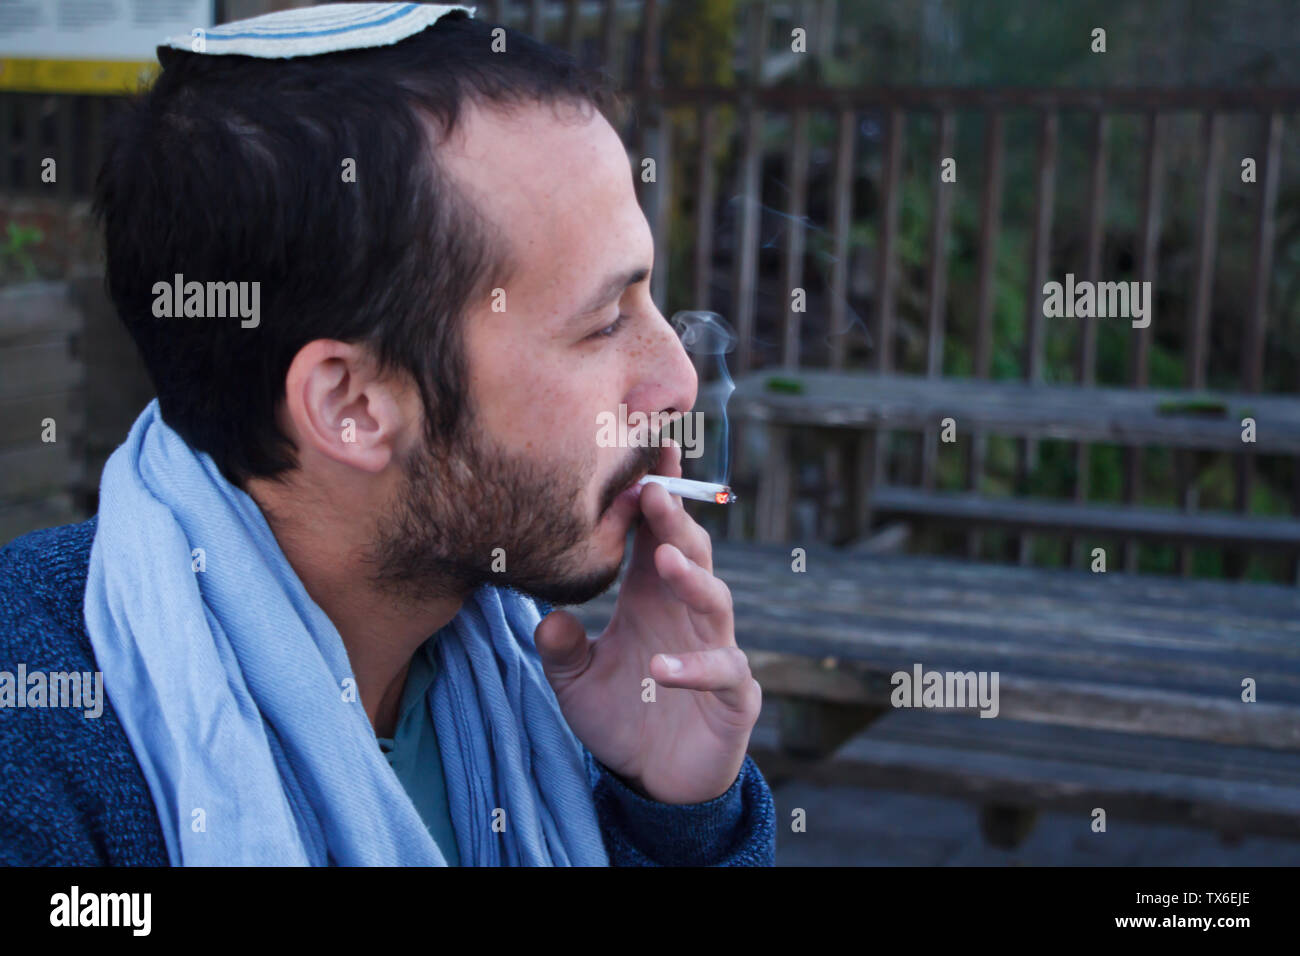 Naples, Italy - November 09, 2018: Profile of a young Jewish man in a traditional Jewish Kippa headdress talking, smiling, smoking on top of Mount Ves - Stock Image